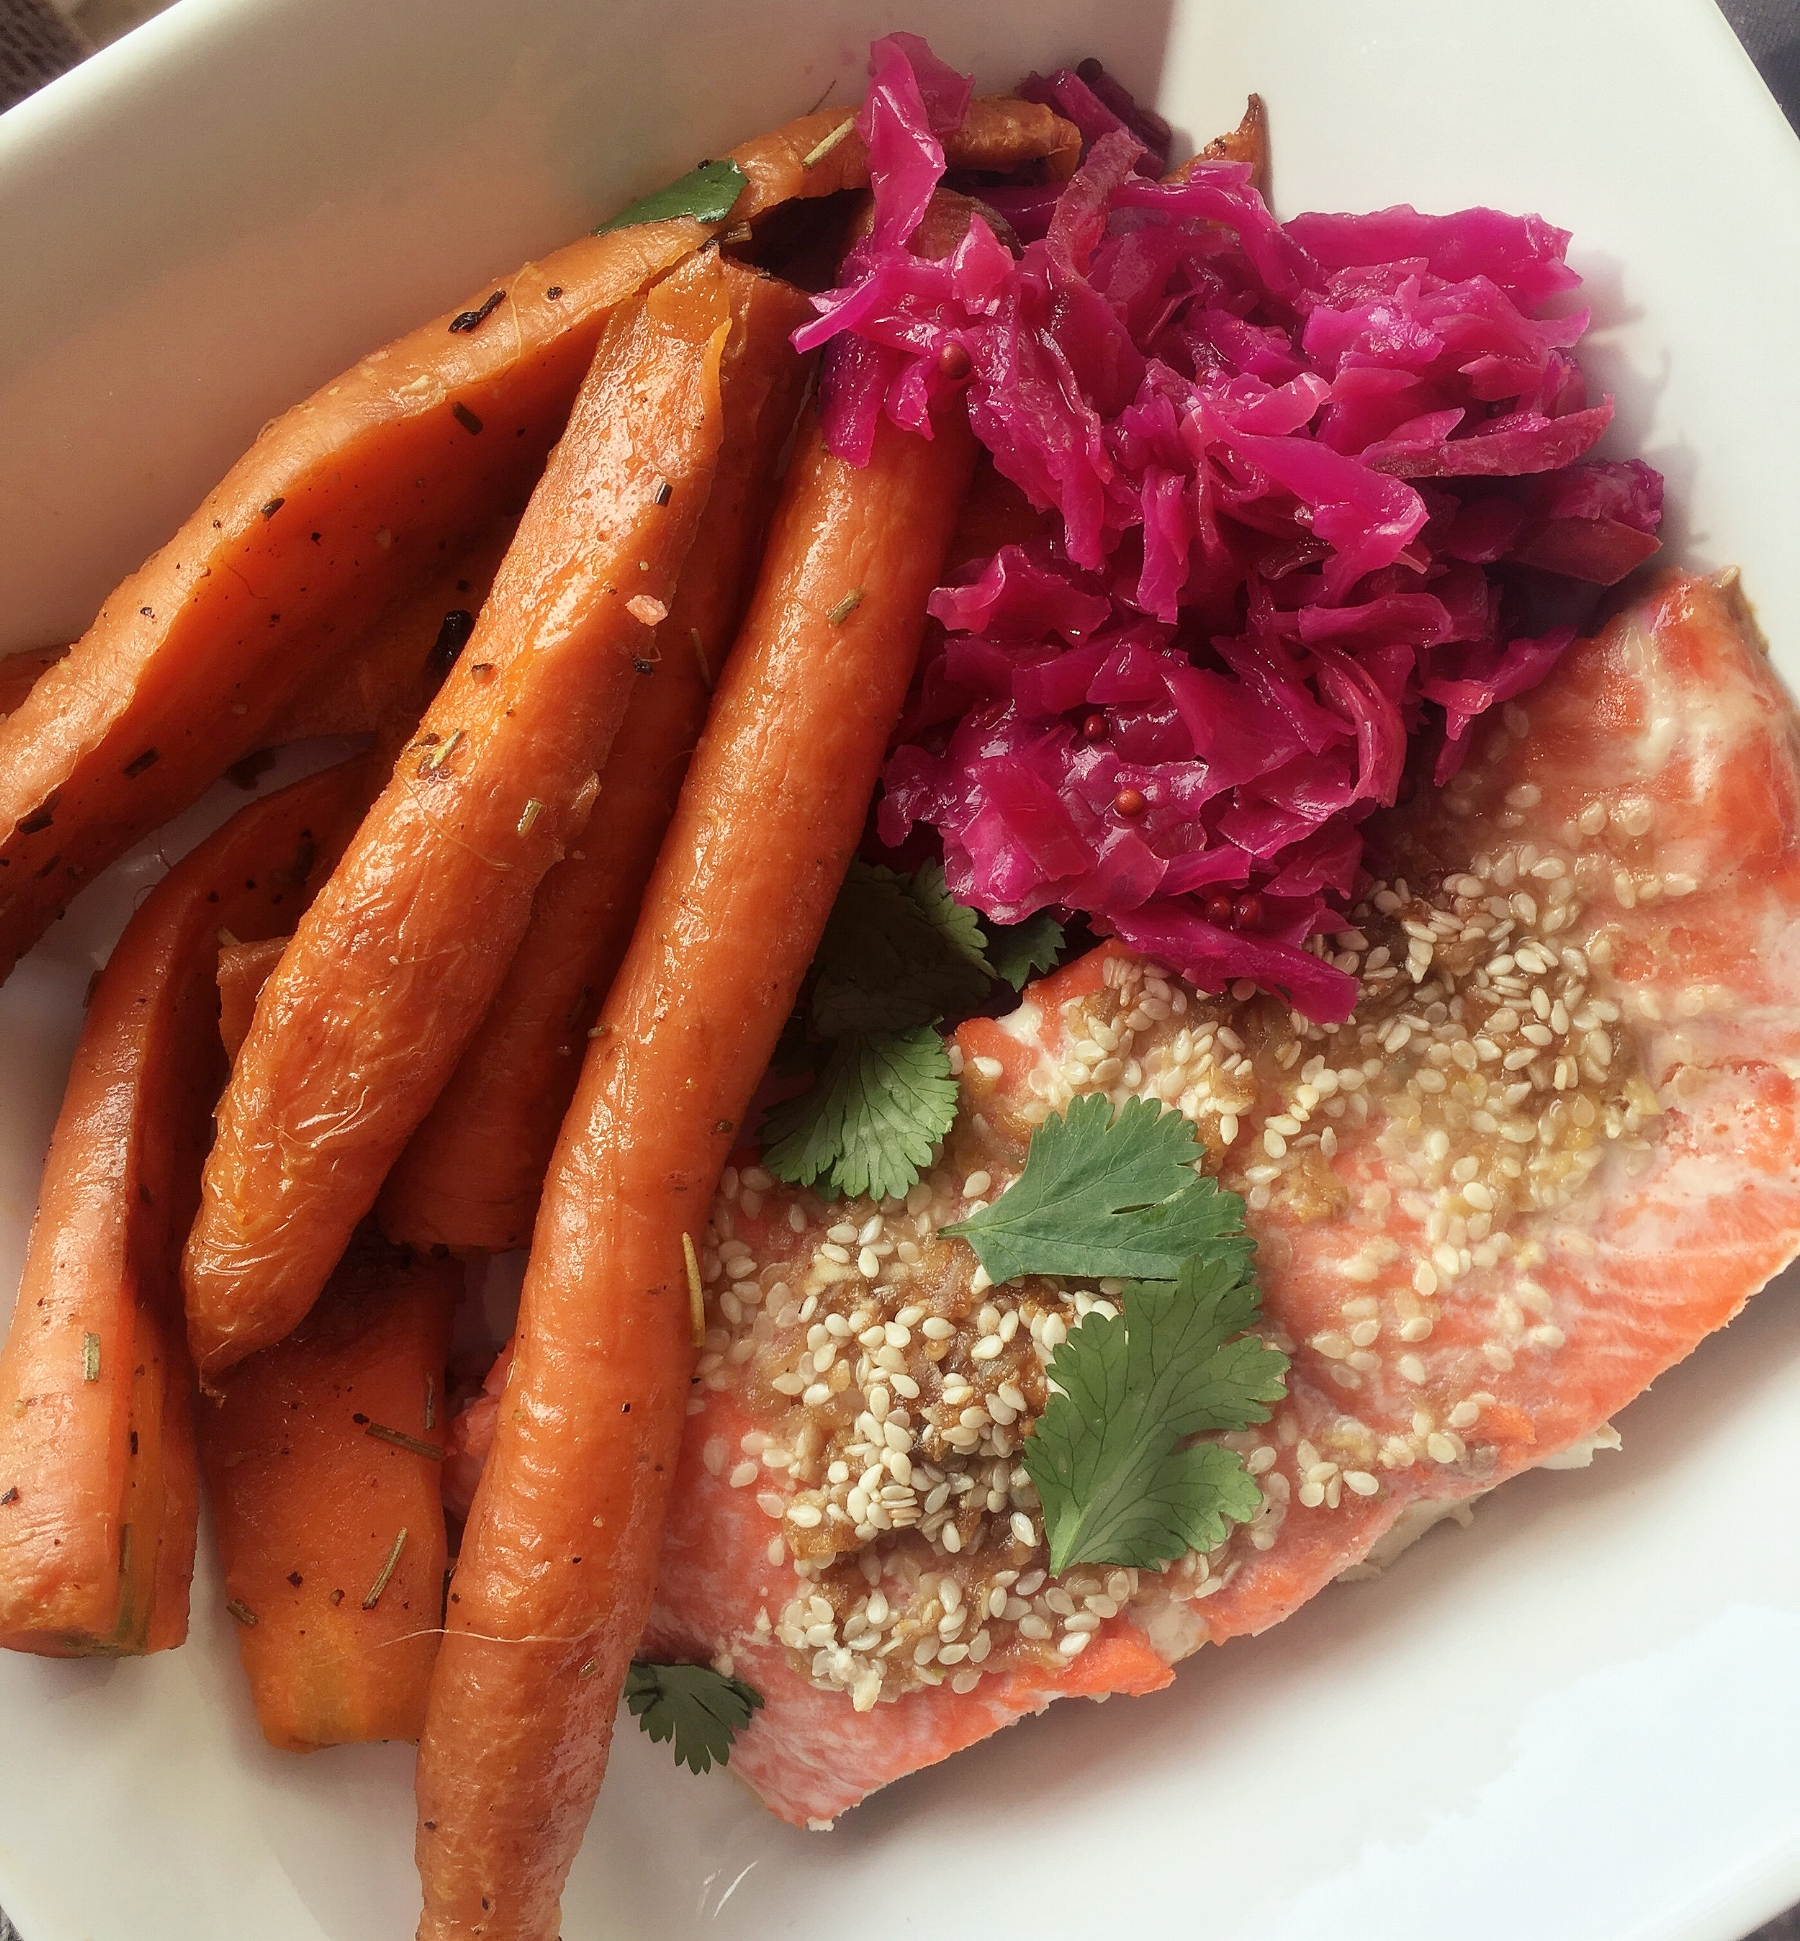 Tip: add a little bit of saurkraught along with dinner for digestive support and probiotics (new beneficial bacteria), include fibre rich veggies (prebiotic fibre to feed/ strengthen our good bacteria), choose ethical and antibiotic free protein sources